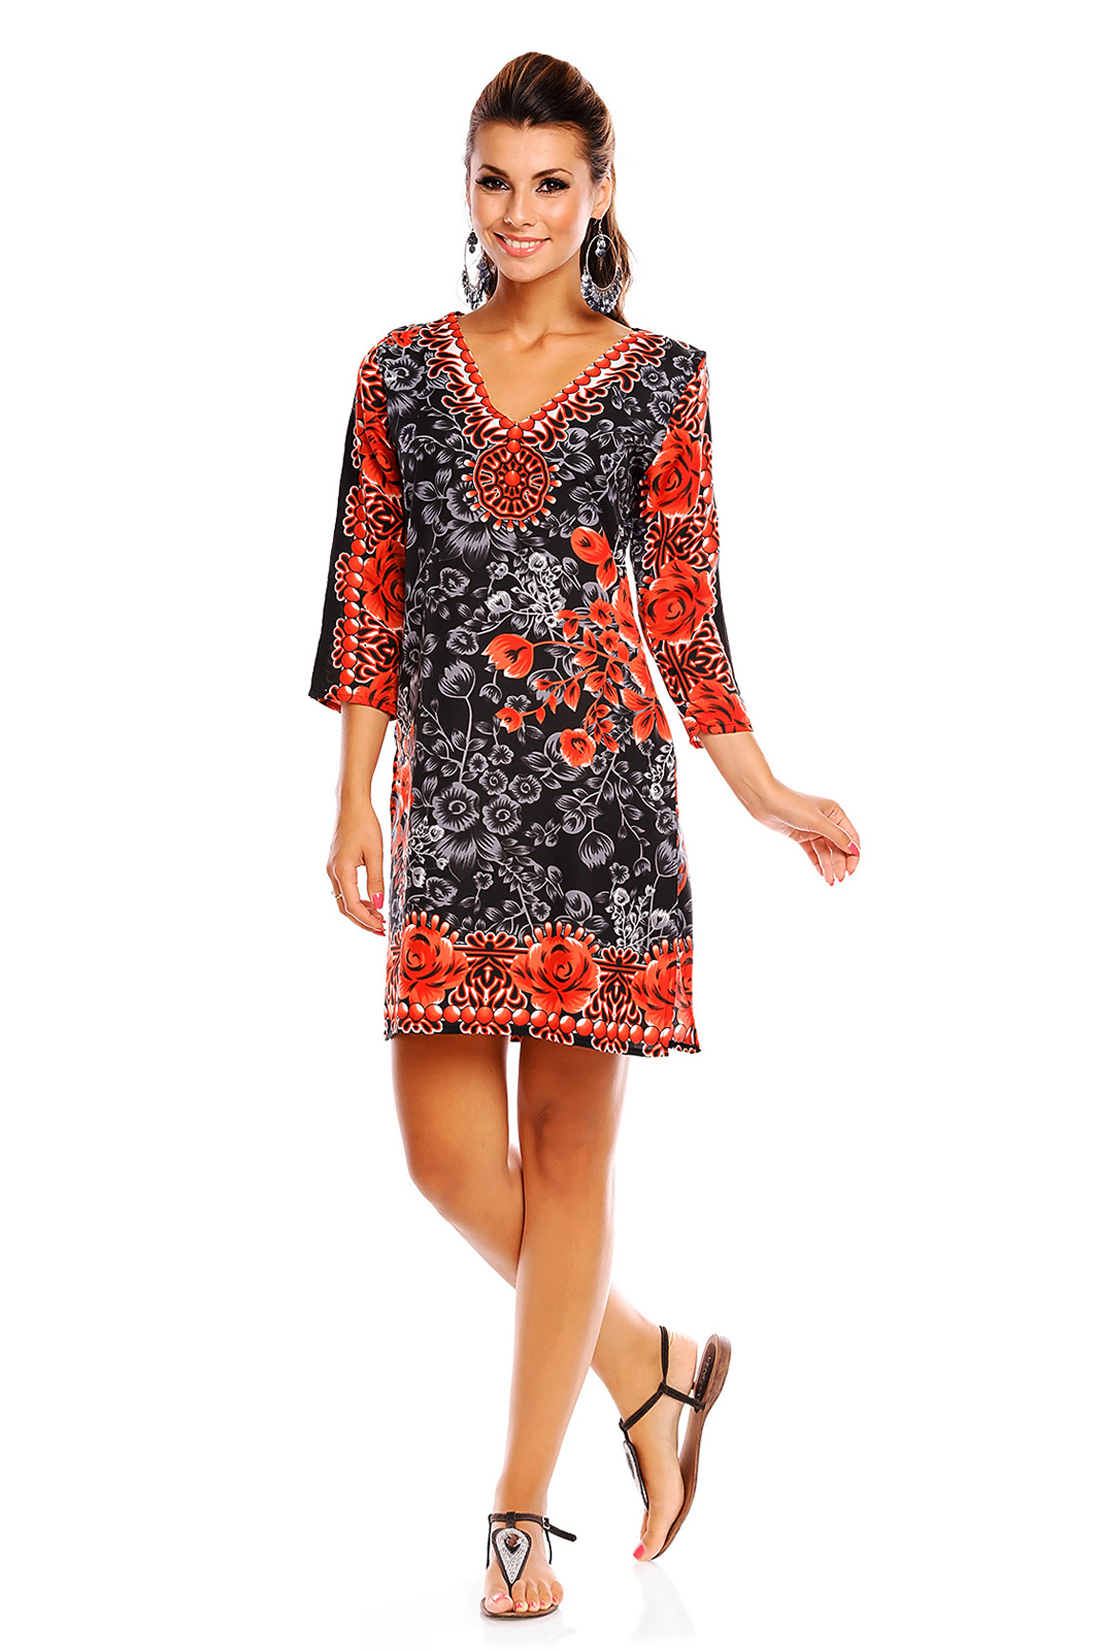 Discover the best Women's Tunics in Best Sellers. Find the top most popular items in Amazon Best Sellers. Best Sellers in Women's Tunics #1. Sanifer Women Lace Long Sleeve Tunic Top Blouse out of 5 stars 1, Romwe Women's Tunic Swing T-Shirt Dress Short Sleeve Tie Dye Ombre Dress out of 5 stars 2,